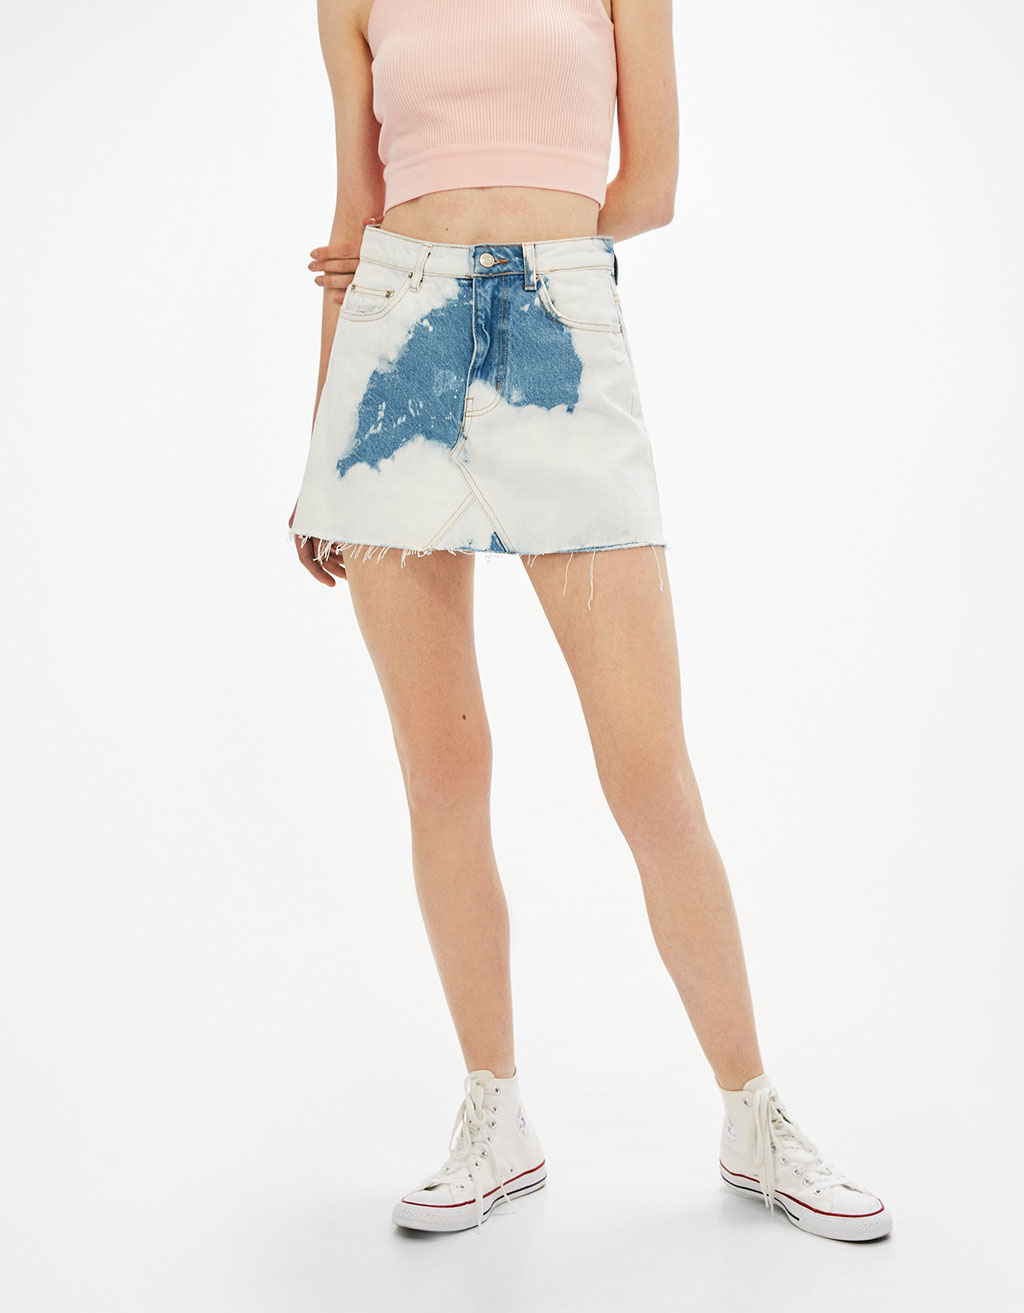 Denim skirt with bleach stains